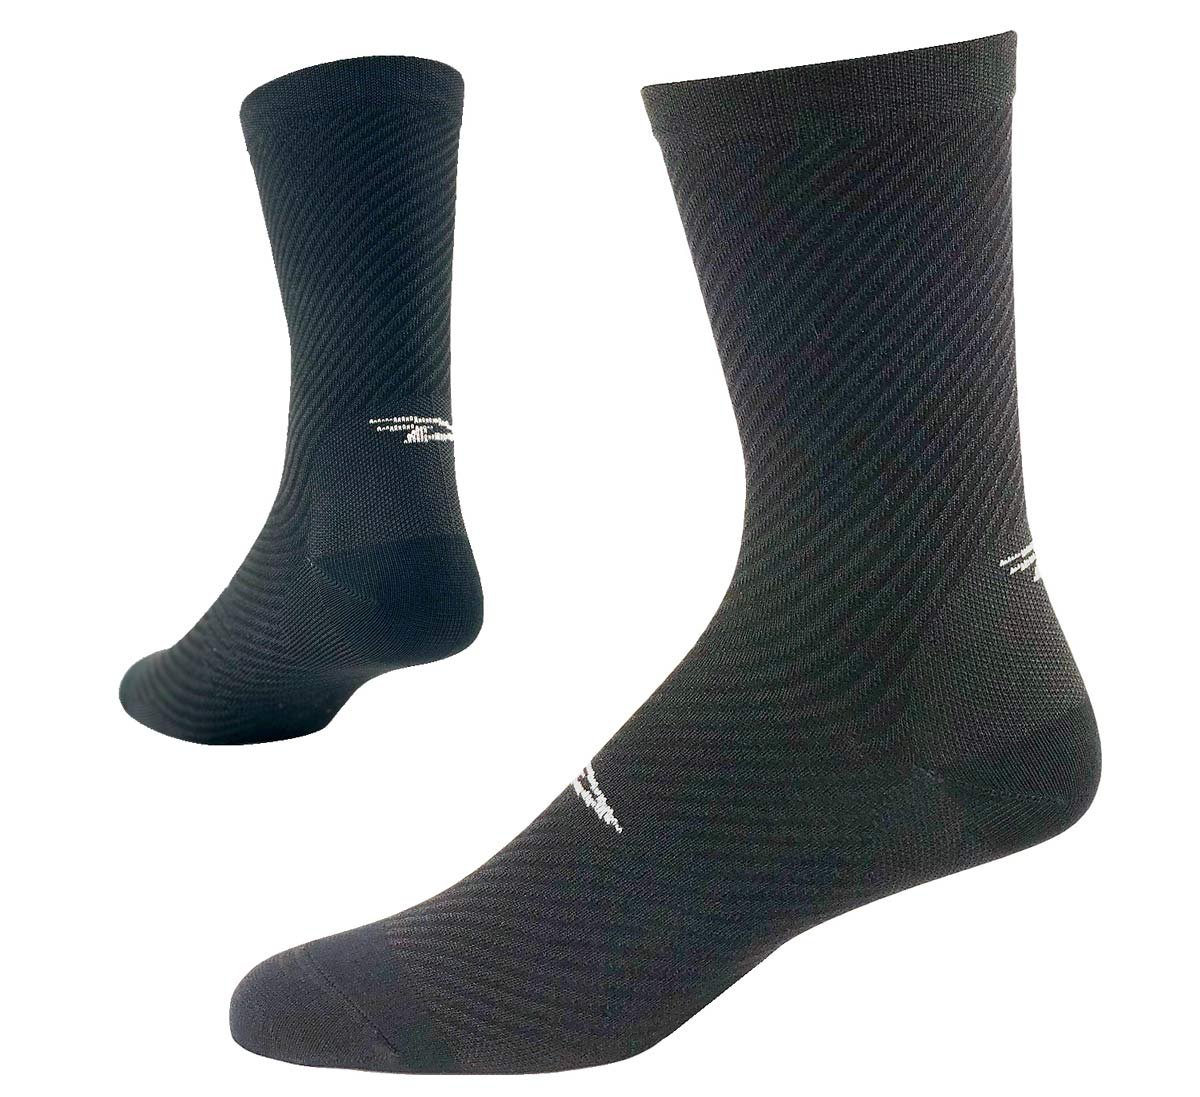 DeFeet EVO carbon fiber cycling socks are the lightest weight socks in the world